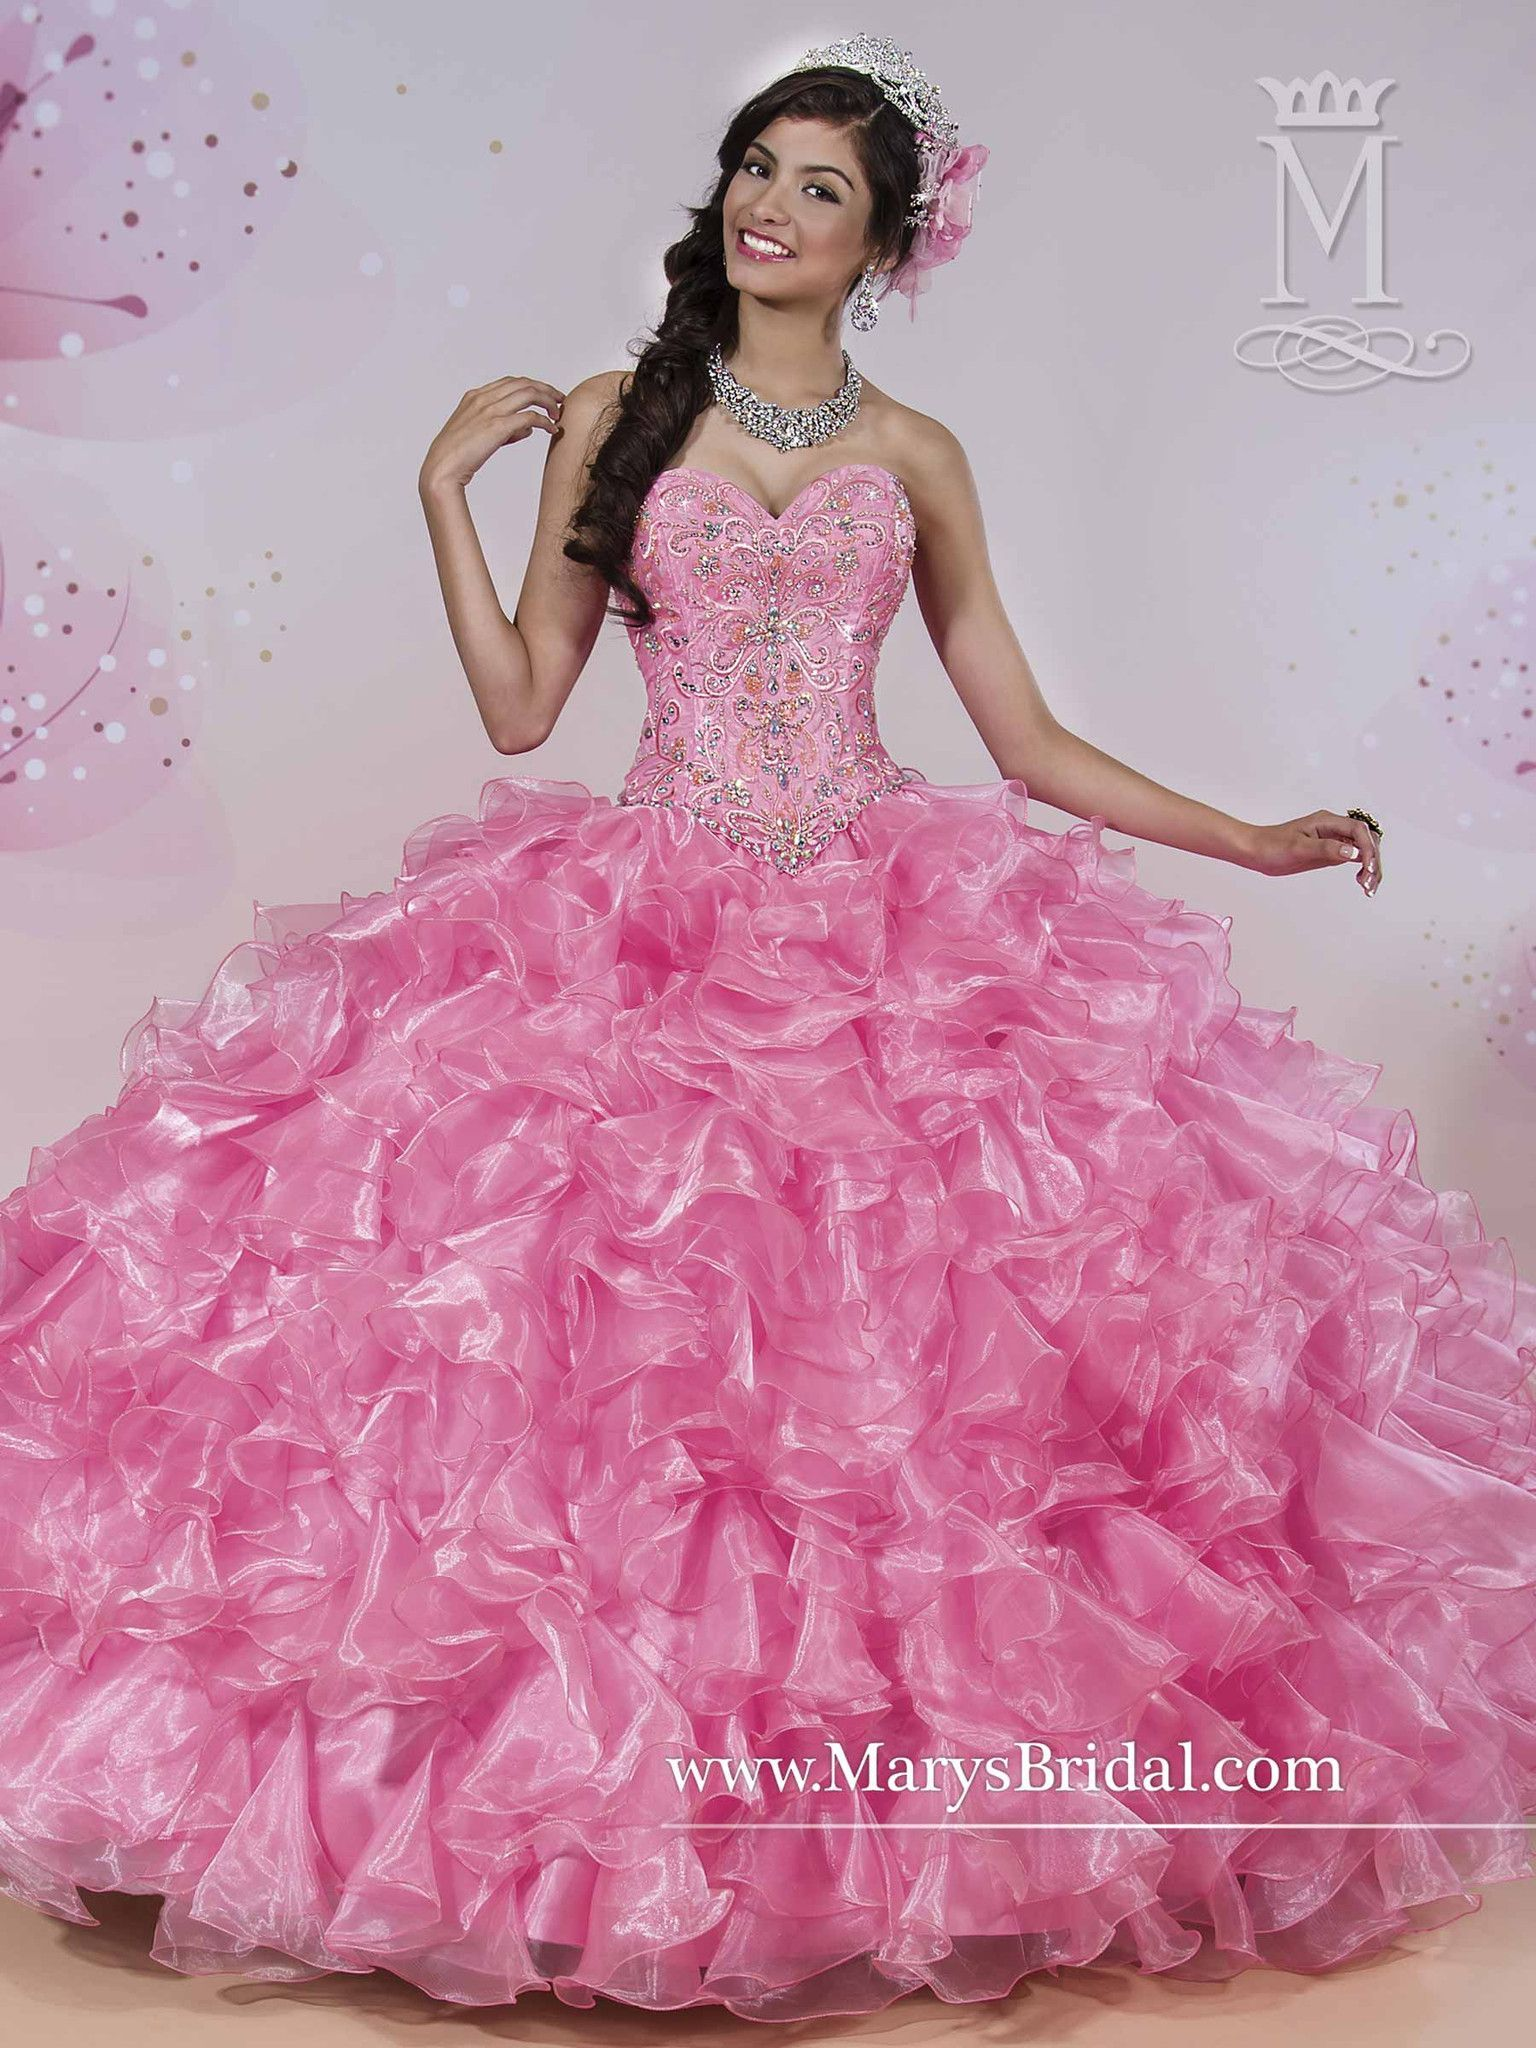 d5f71746897 Mary s Bridal Princess Collection Quinceanera Dress Style 4Q416